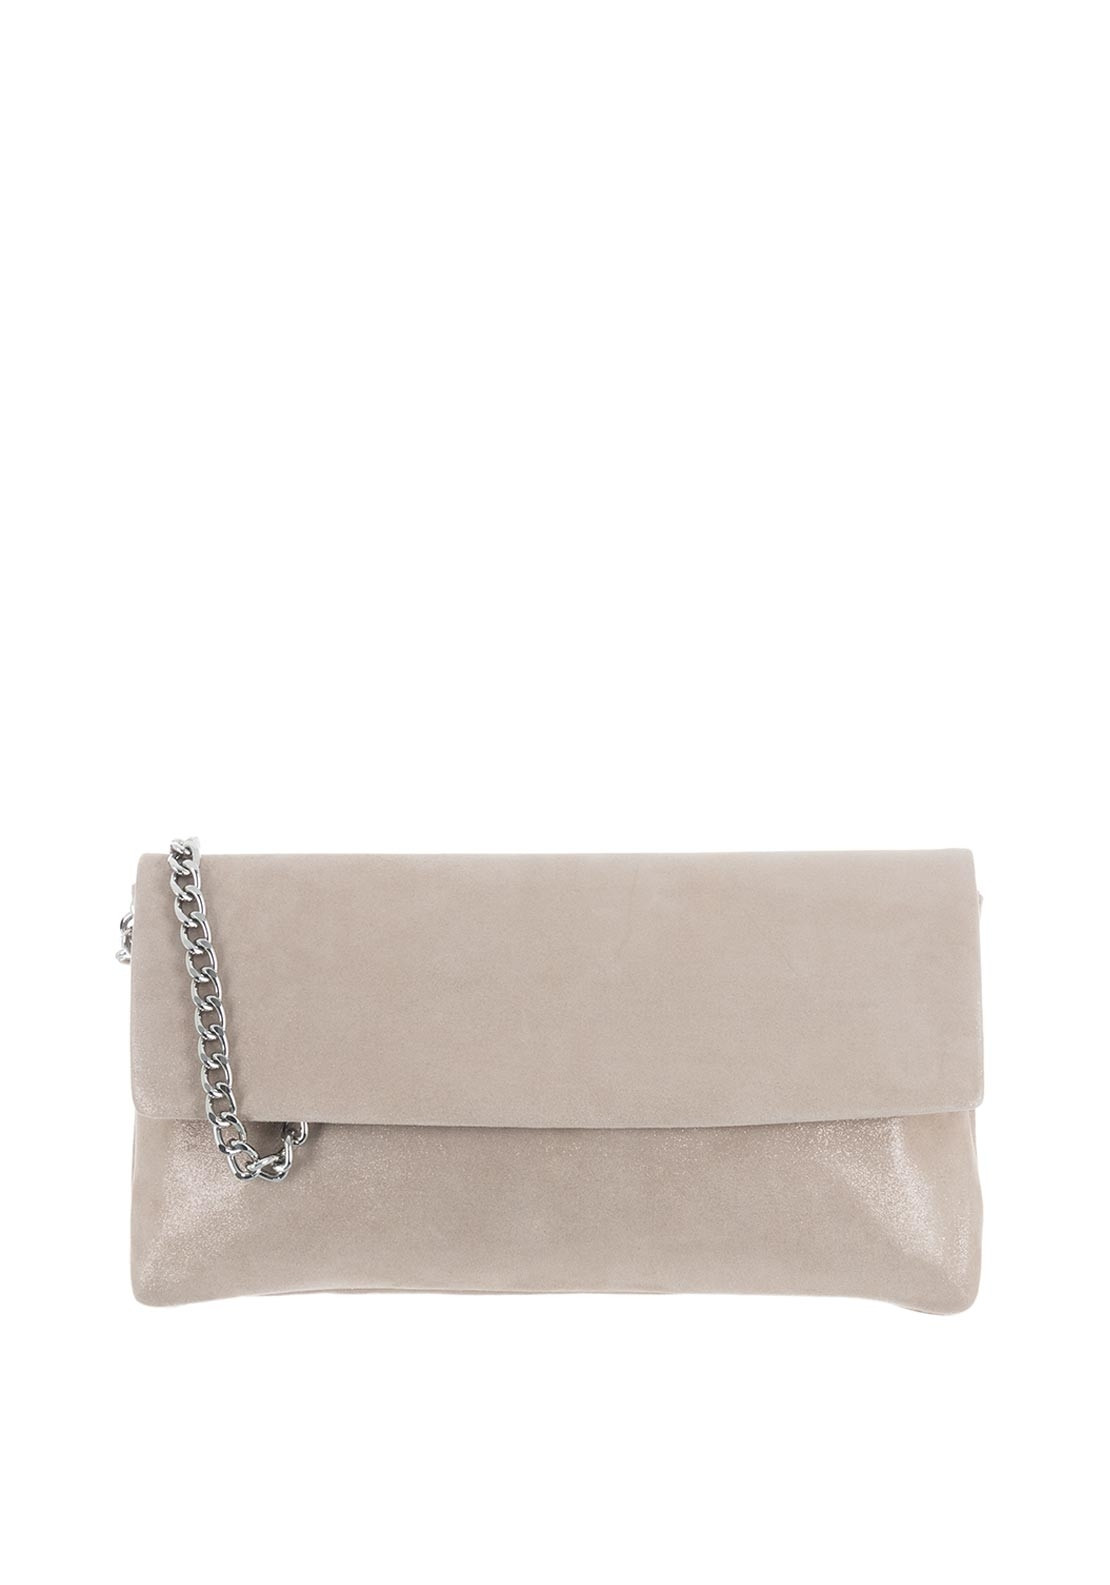 Le Babe Suede Shimmer Clutch Bag, Champagne